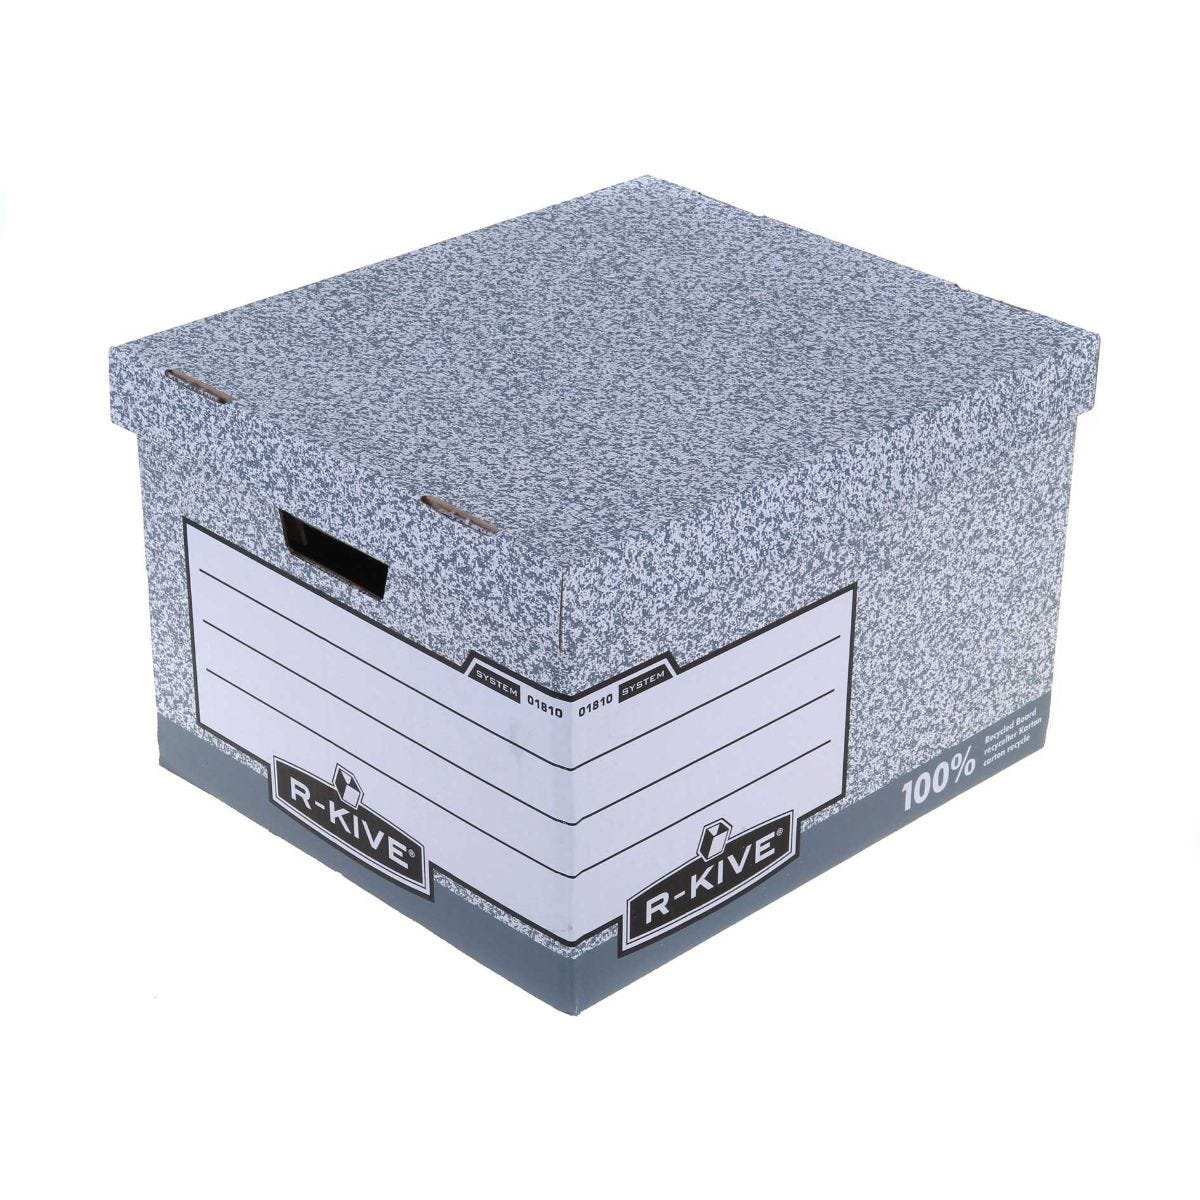 Image of Bankers Box by Fellowes System Large Storage Box with Fastfold